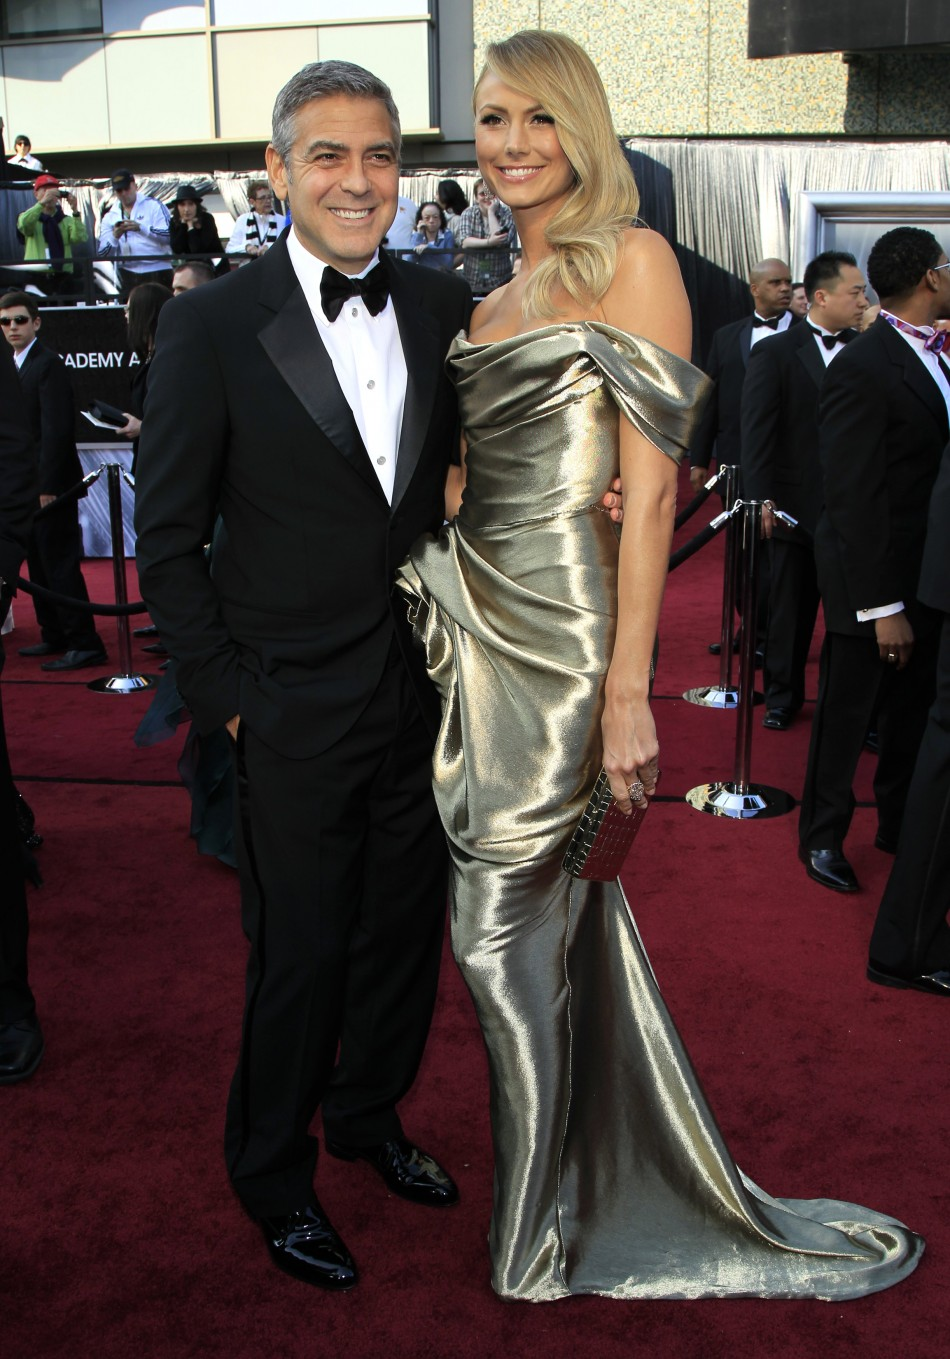 Actor George Clooney and girlfriend Stacy Keibler pose on the red carpet as they arrive at the 84th Academy Awards in Hollywood